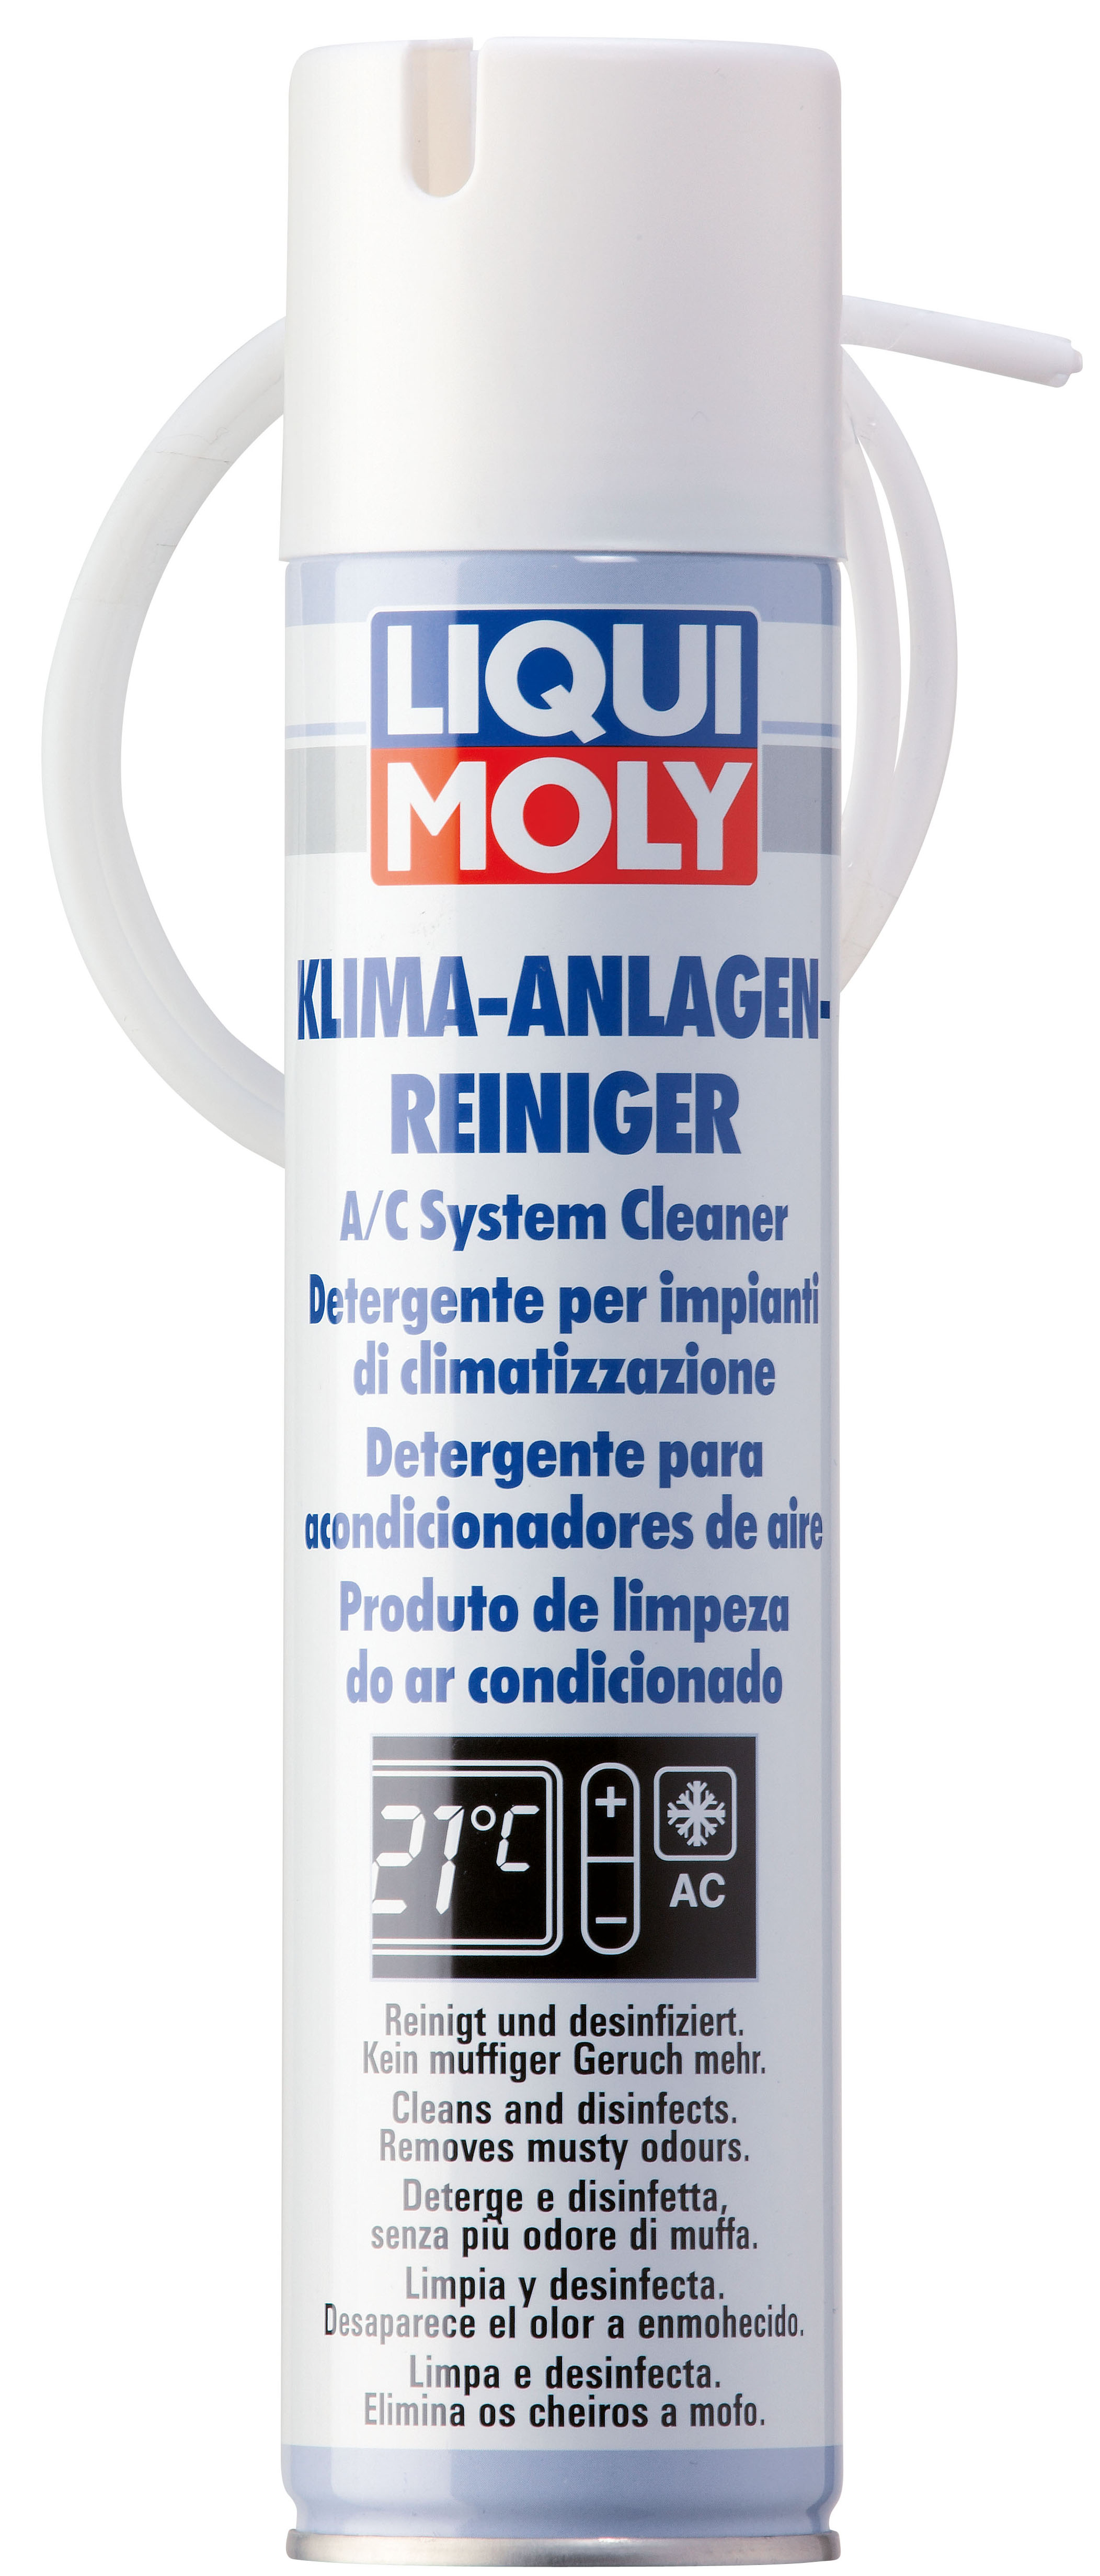 motoroel king liqui moly klimaanlagen reiniger liqui moly. Black Bedroom Furniture Sets. Home Design Ideas